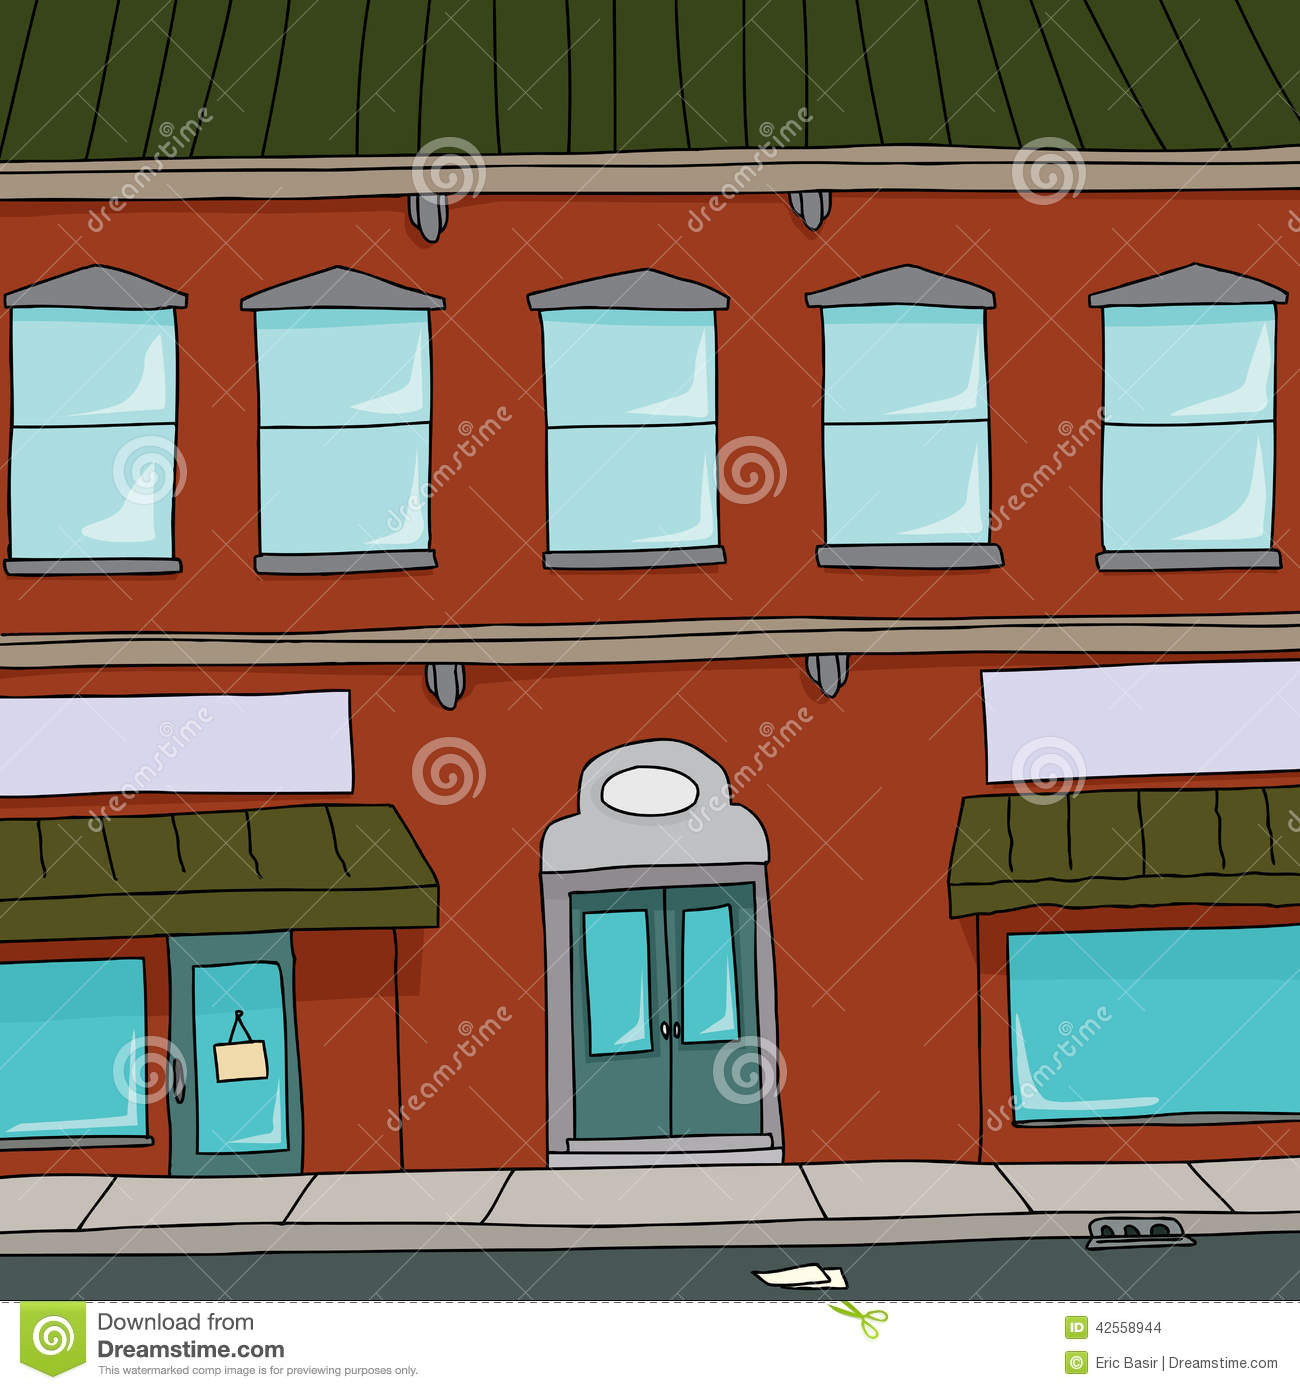 Apartment Store: Cartoon Building Stock Vector. Illustration Of Store